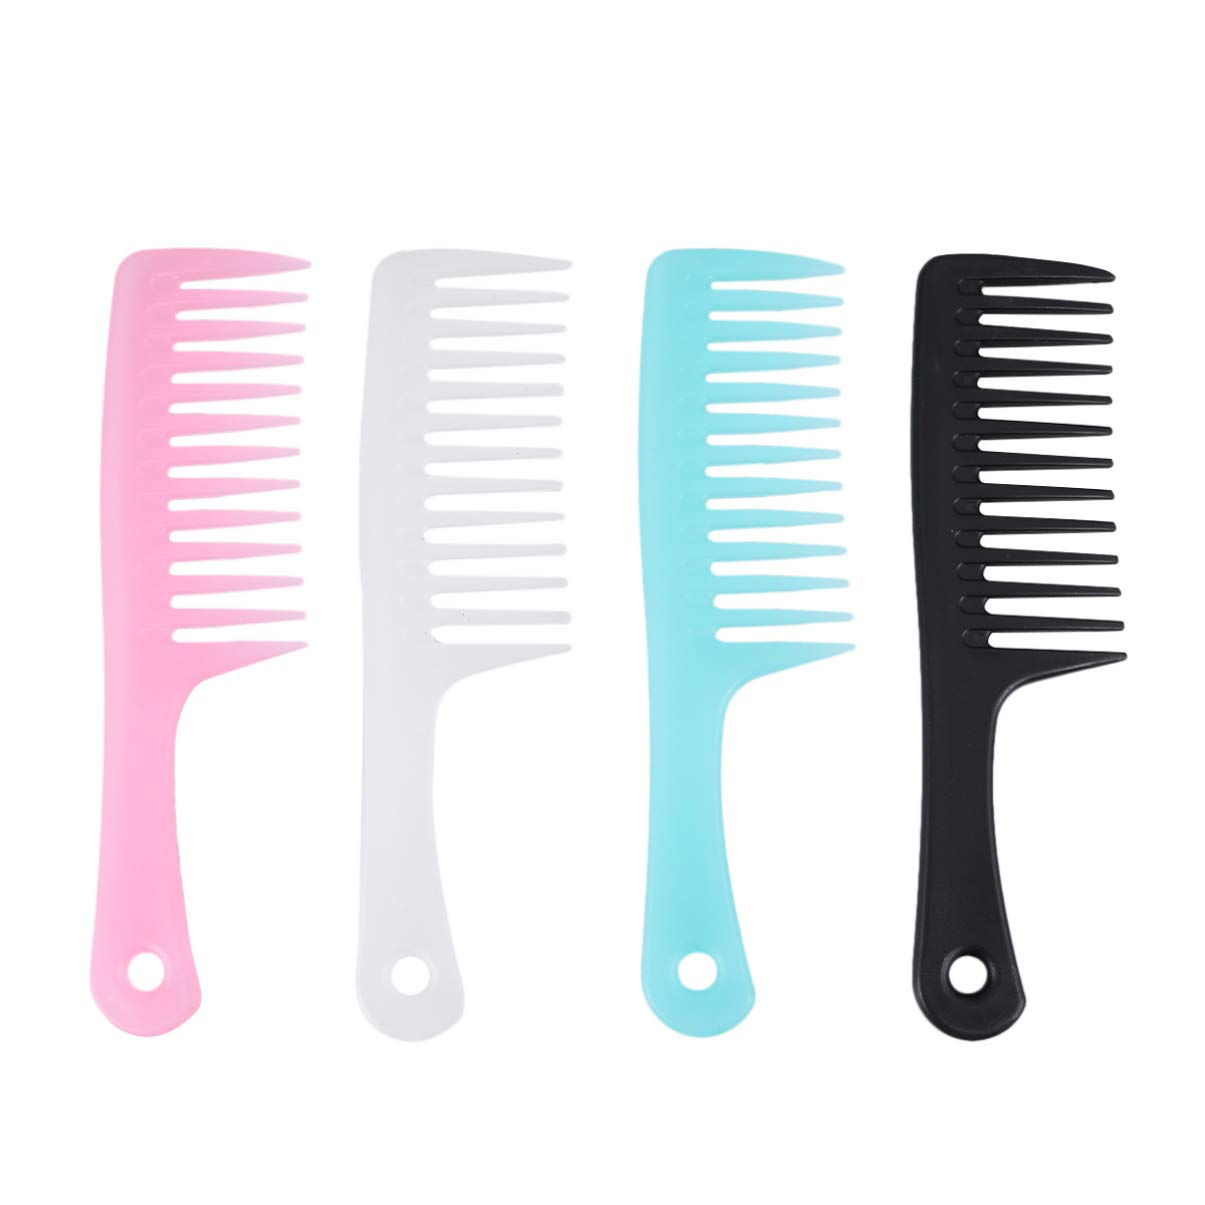 Minkissy Anti-static Large Tooth Detangle Comb, 4pcs Wide Tooth Hair Comb for Women, Salon Shampoo Comb for Thick Hair Long Hair and Curly Hair, Scalp Massage Combs (Picture 1)